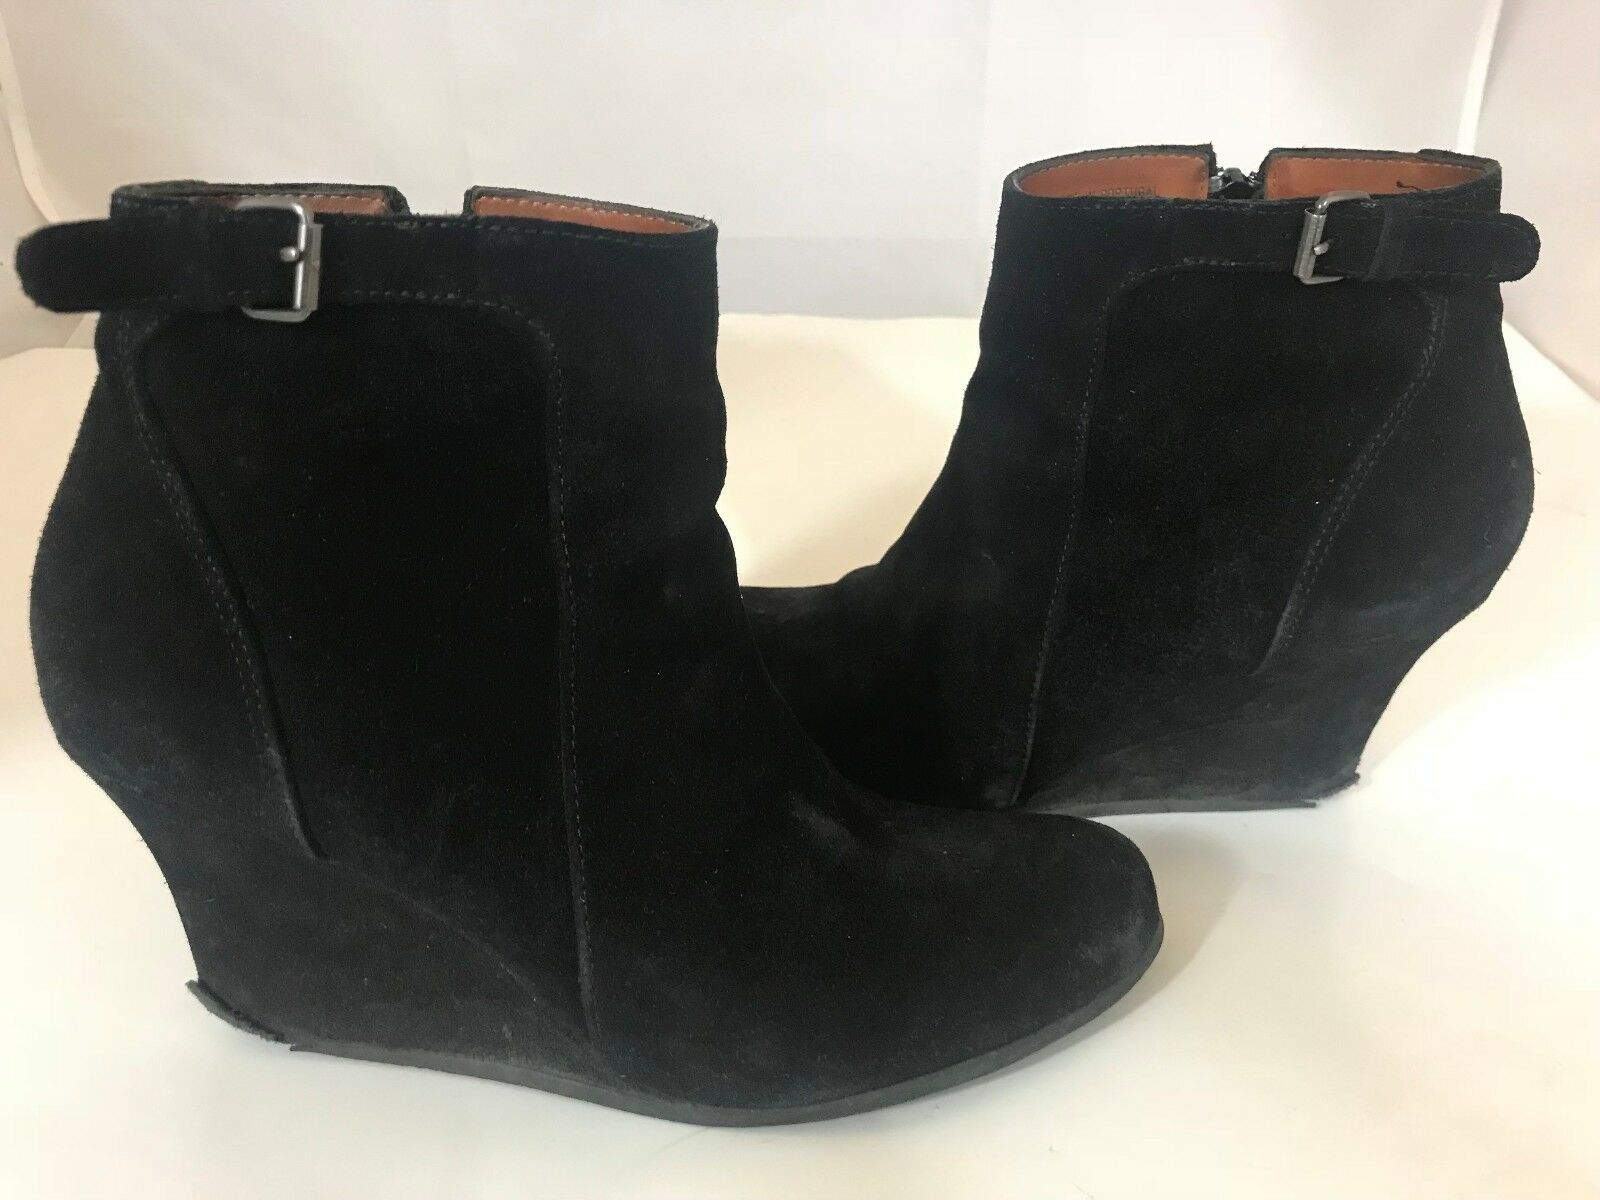 LANVIN 12418 BLACK SUEDE WEDGE ZIP UP BOOTIE SZ 36.5